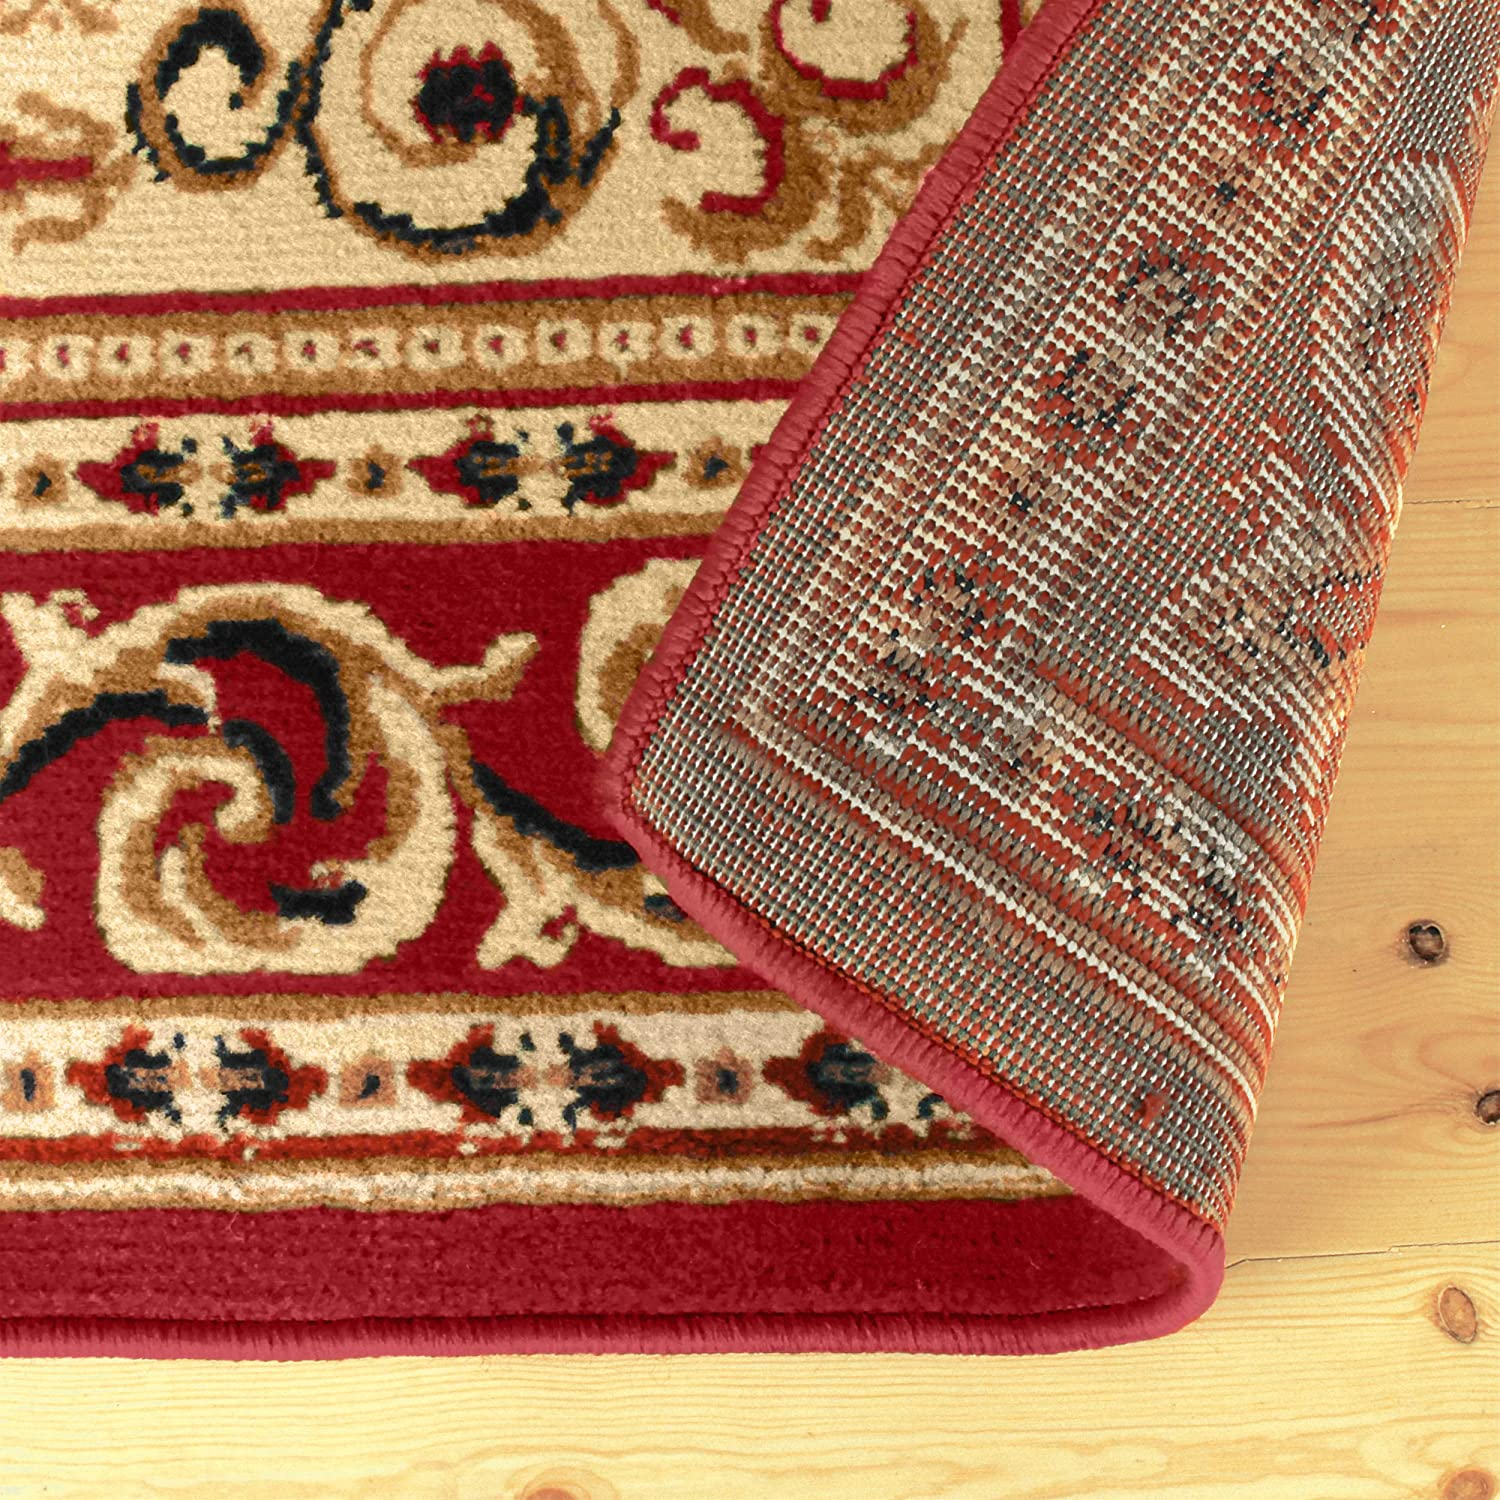 Oriental Rug Design with Detailed Border Attractive Rug with Jute Backing Multi-Colored Designer Durable and Beautiful Woven Structure Superior Longfield Collection 27 x 8 Runner Rug